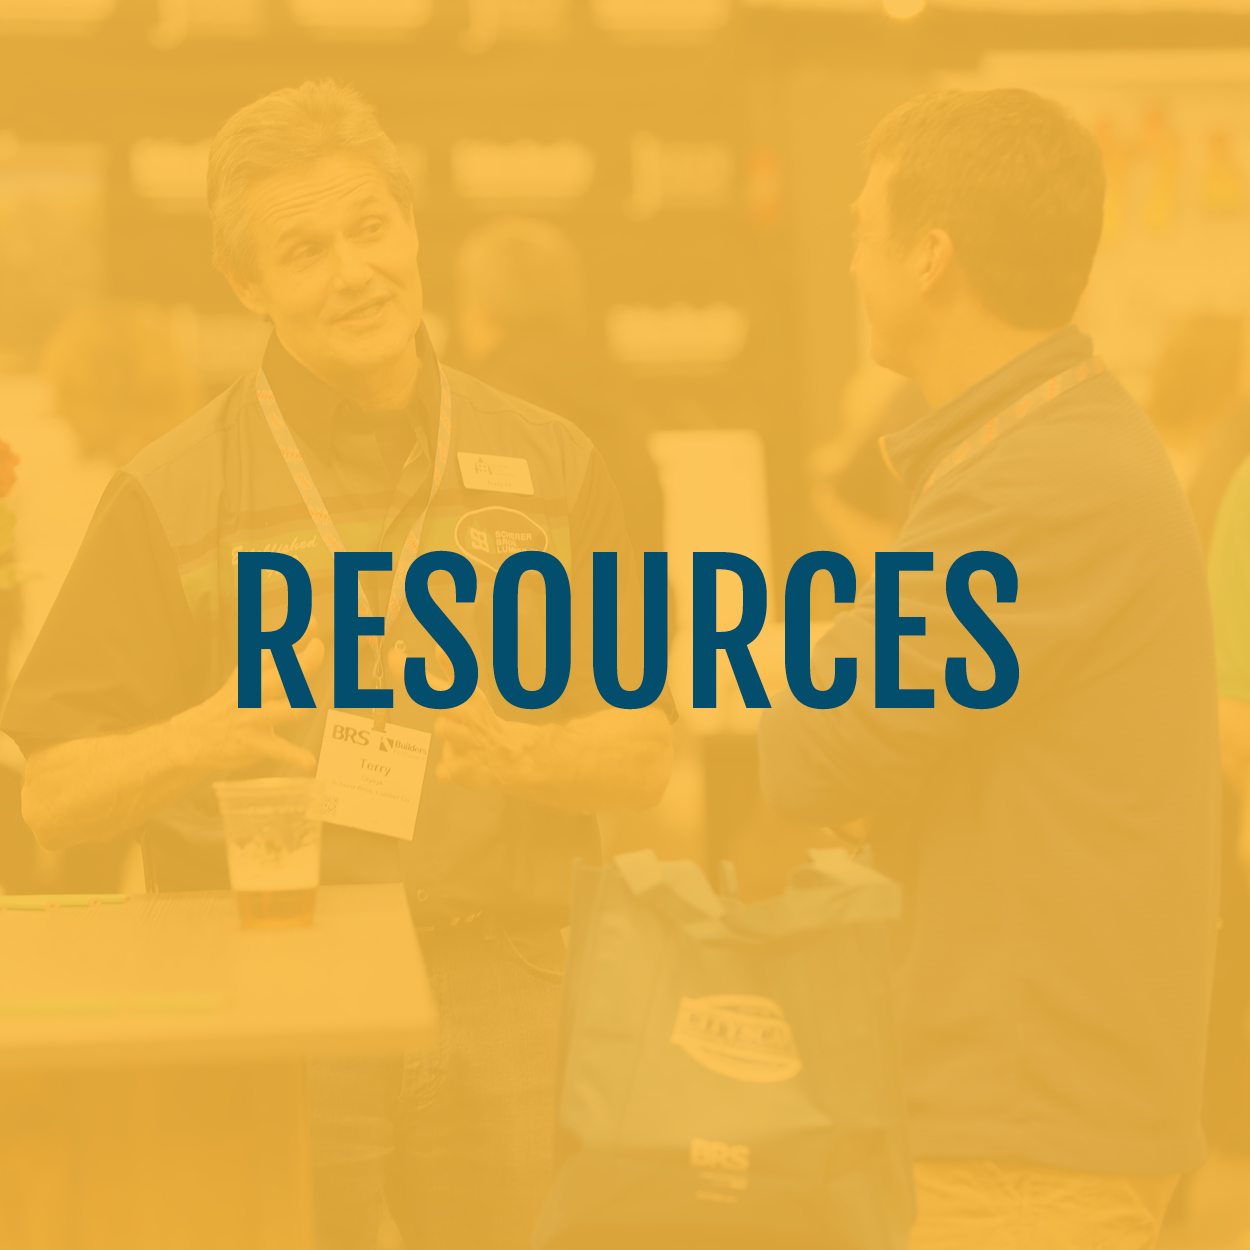 Resources-Yellow.jpg